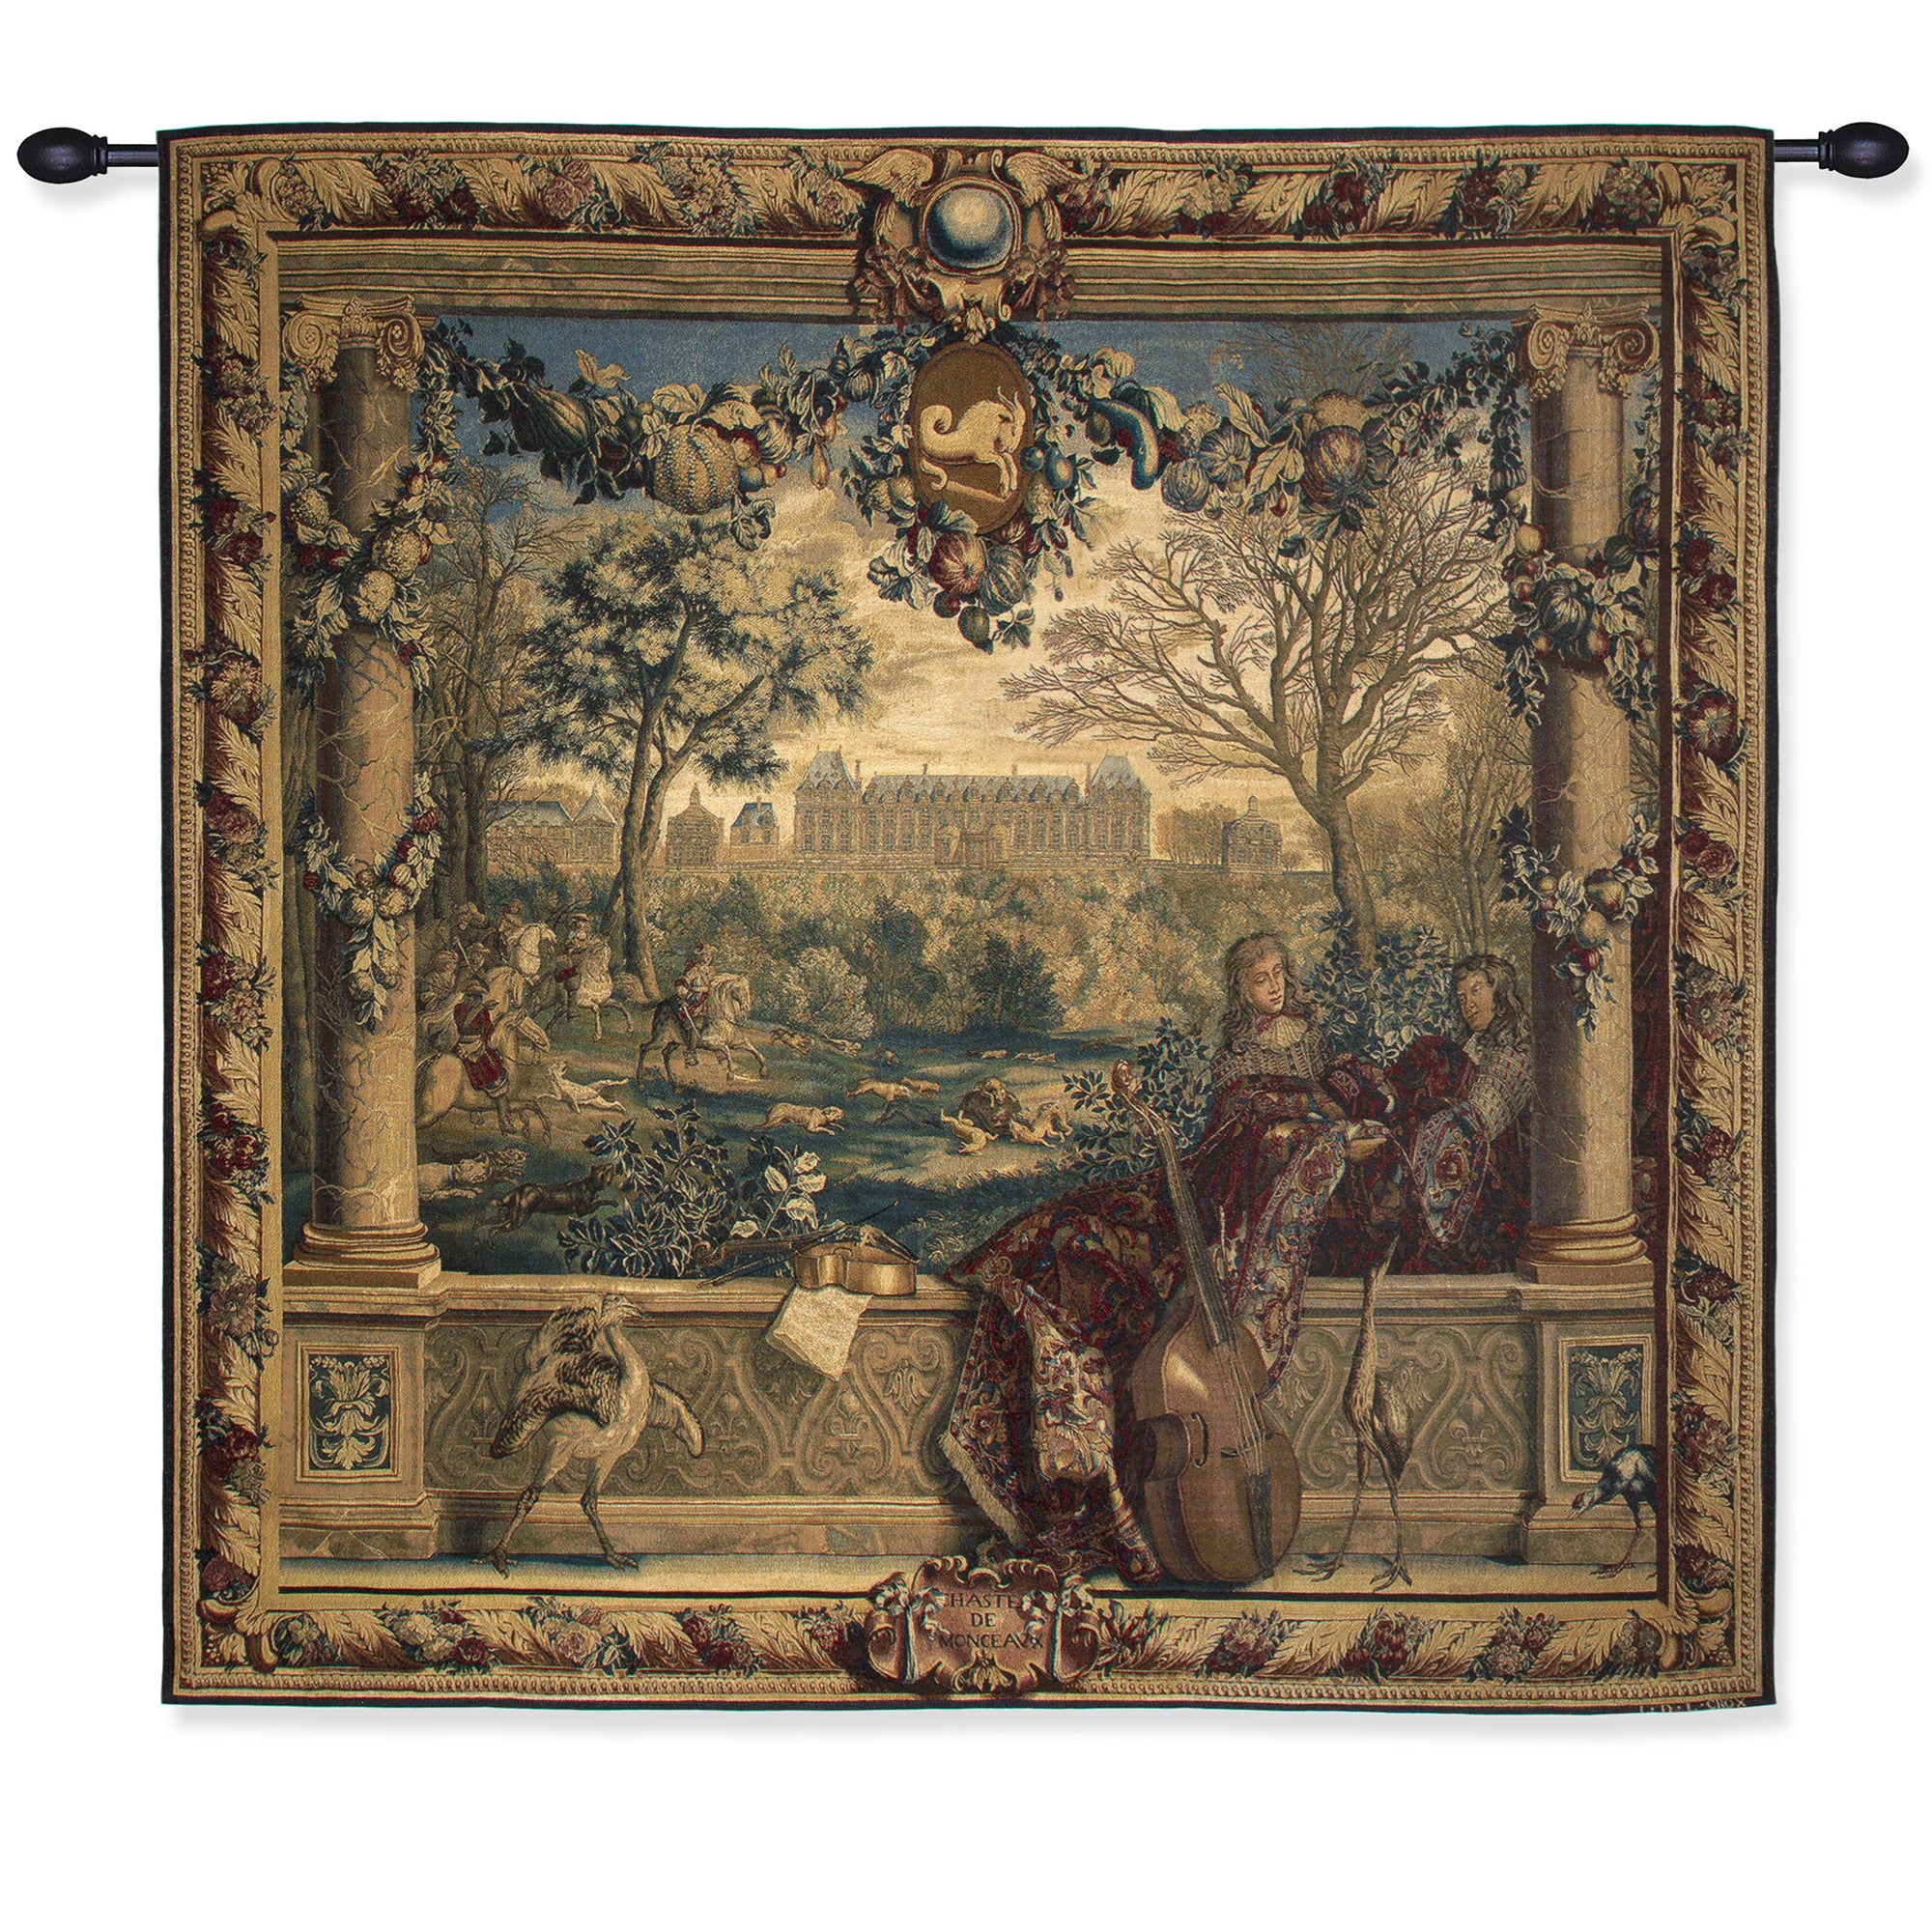 Chateau of Monceaux/Month of December - Tapestry Reproduction